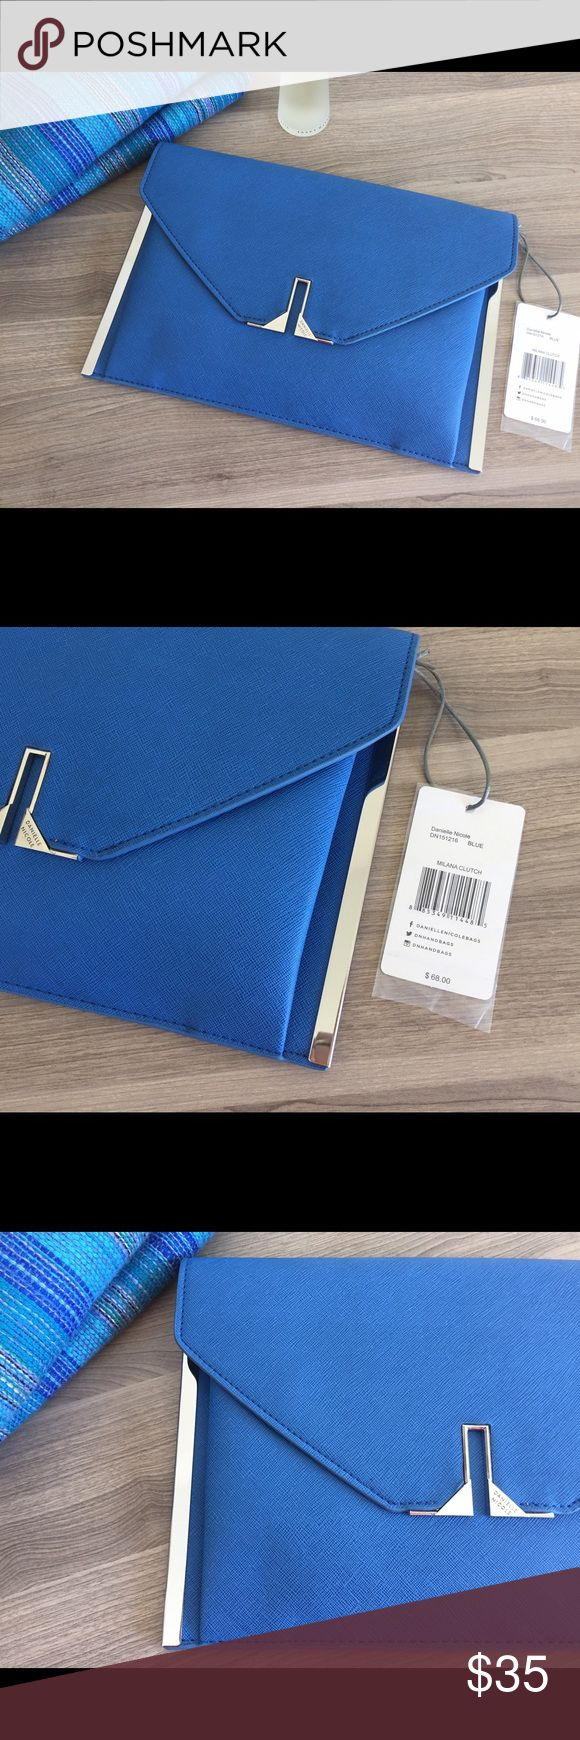 """Gorgeous Blue Clutch - Brand New!! Danielle Nicole Milana Clutch. Beautiful and versatile brand new (tags attached) blue clutch with silver metal detailing. Convertible clutch with shoulder strap included, fabric lined interior with one zipper pocket, snap magnetic closure. Measurements: body length 12.5"""", height 8.5"""", width 1.25"""", strap drop 14.5"""". Clutch is brand new, originally paid $68, selling as I have one in a similar color! Danielle Nicole Bags Clutches & Wristlets"""